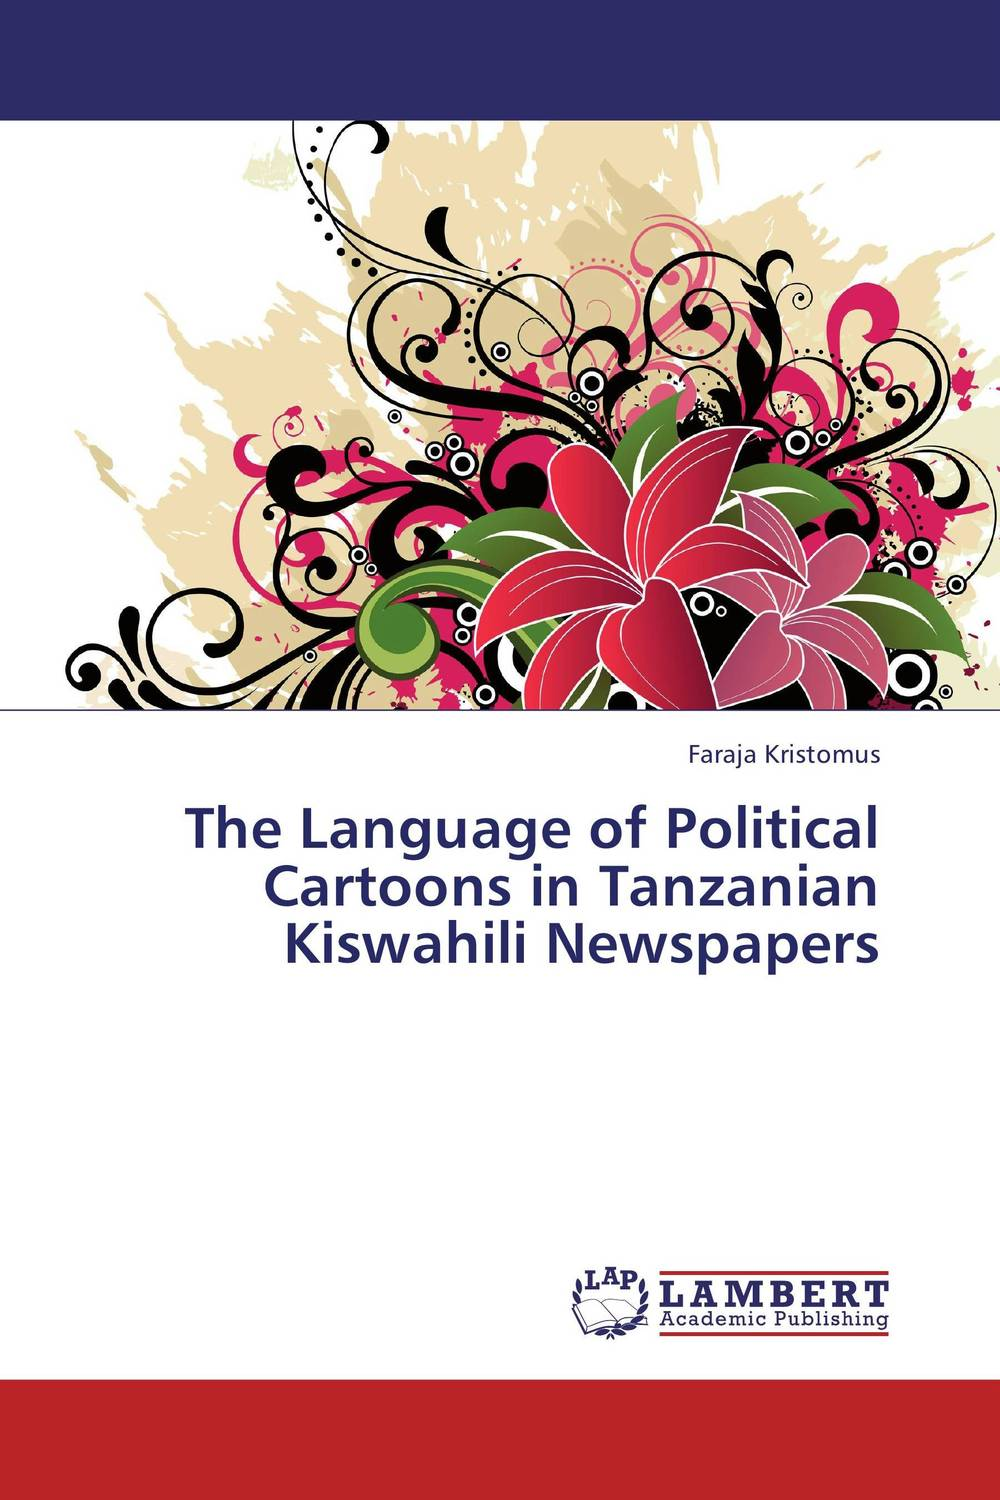 The Language of Political Cartoons in Tanzanian Kiswahili Newspapers